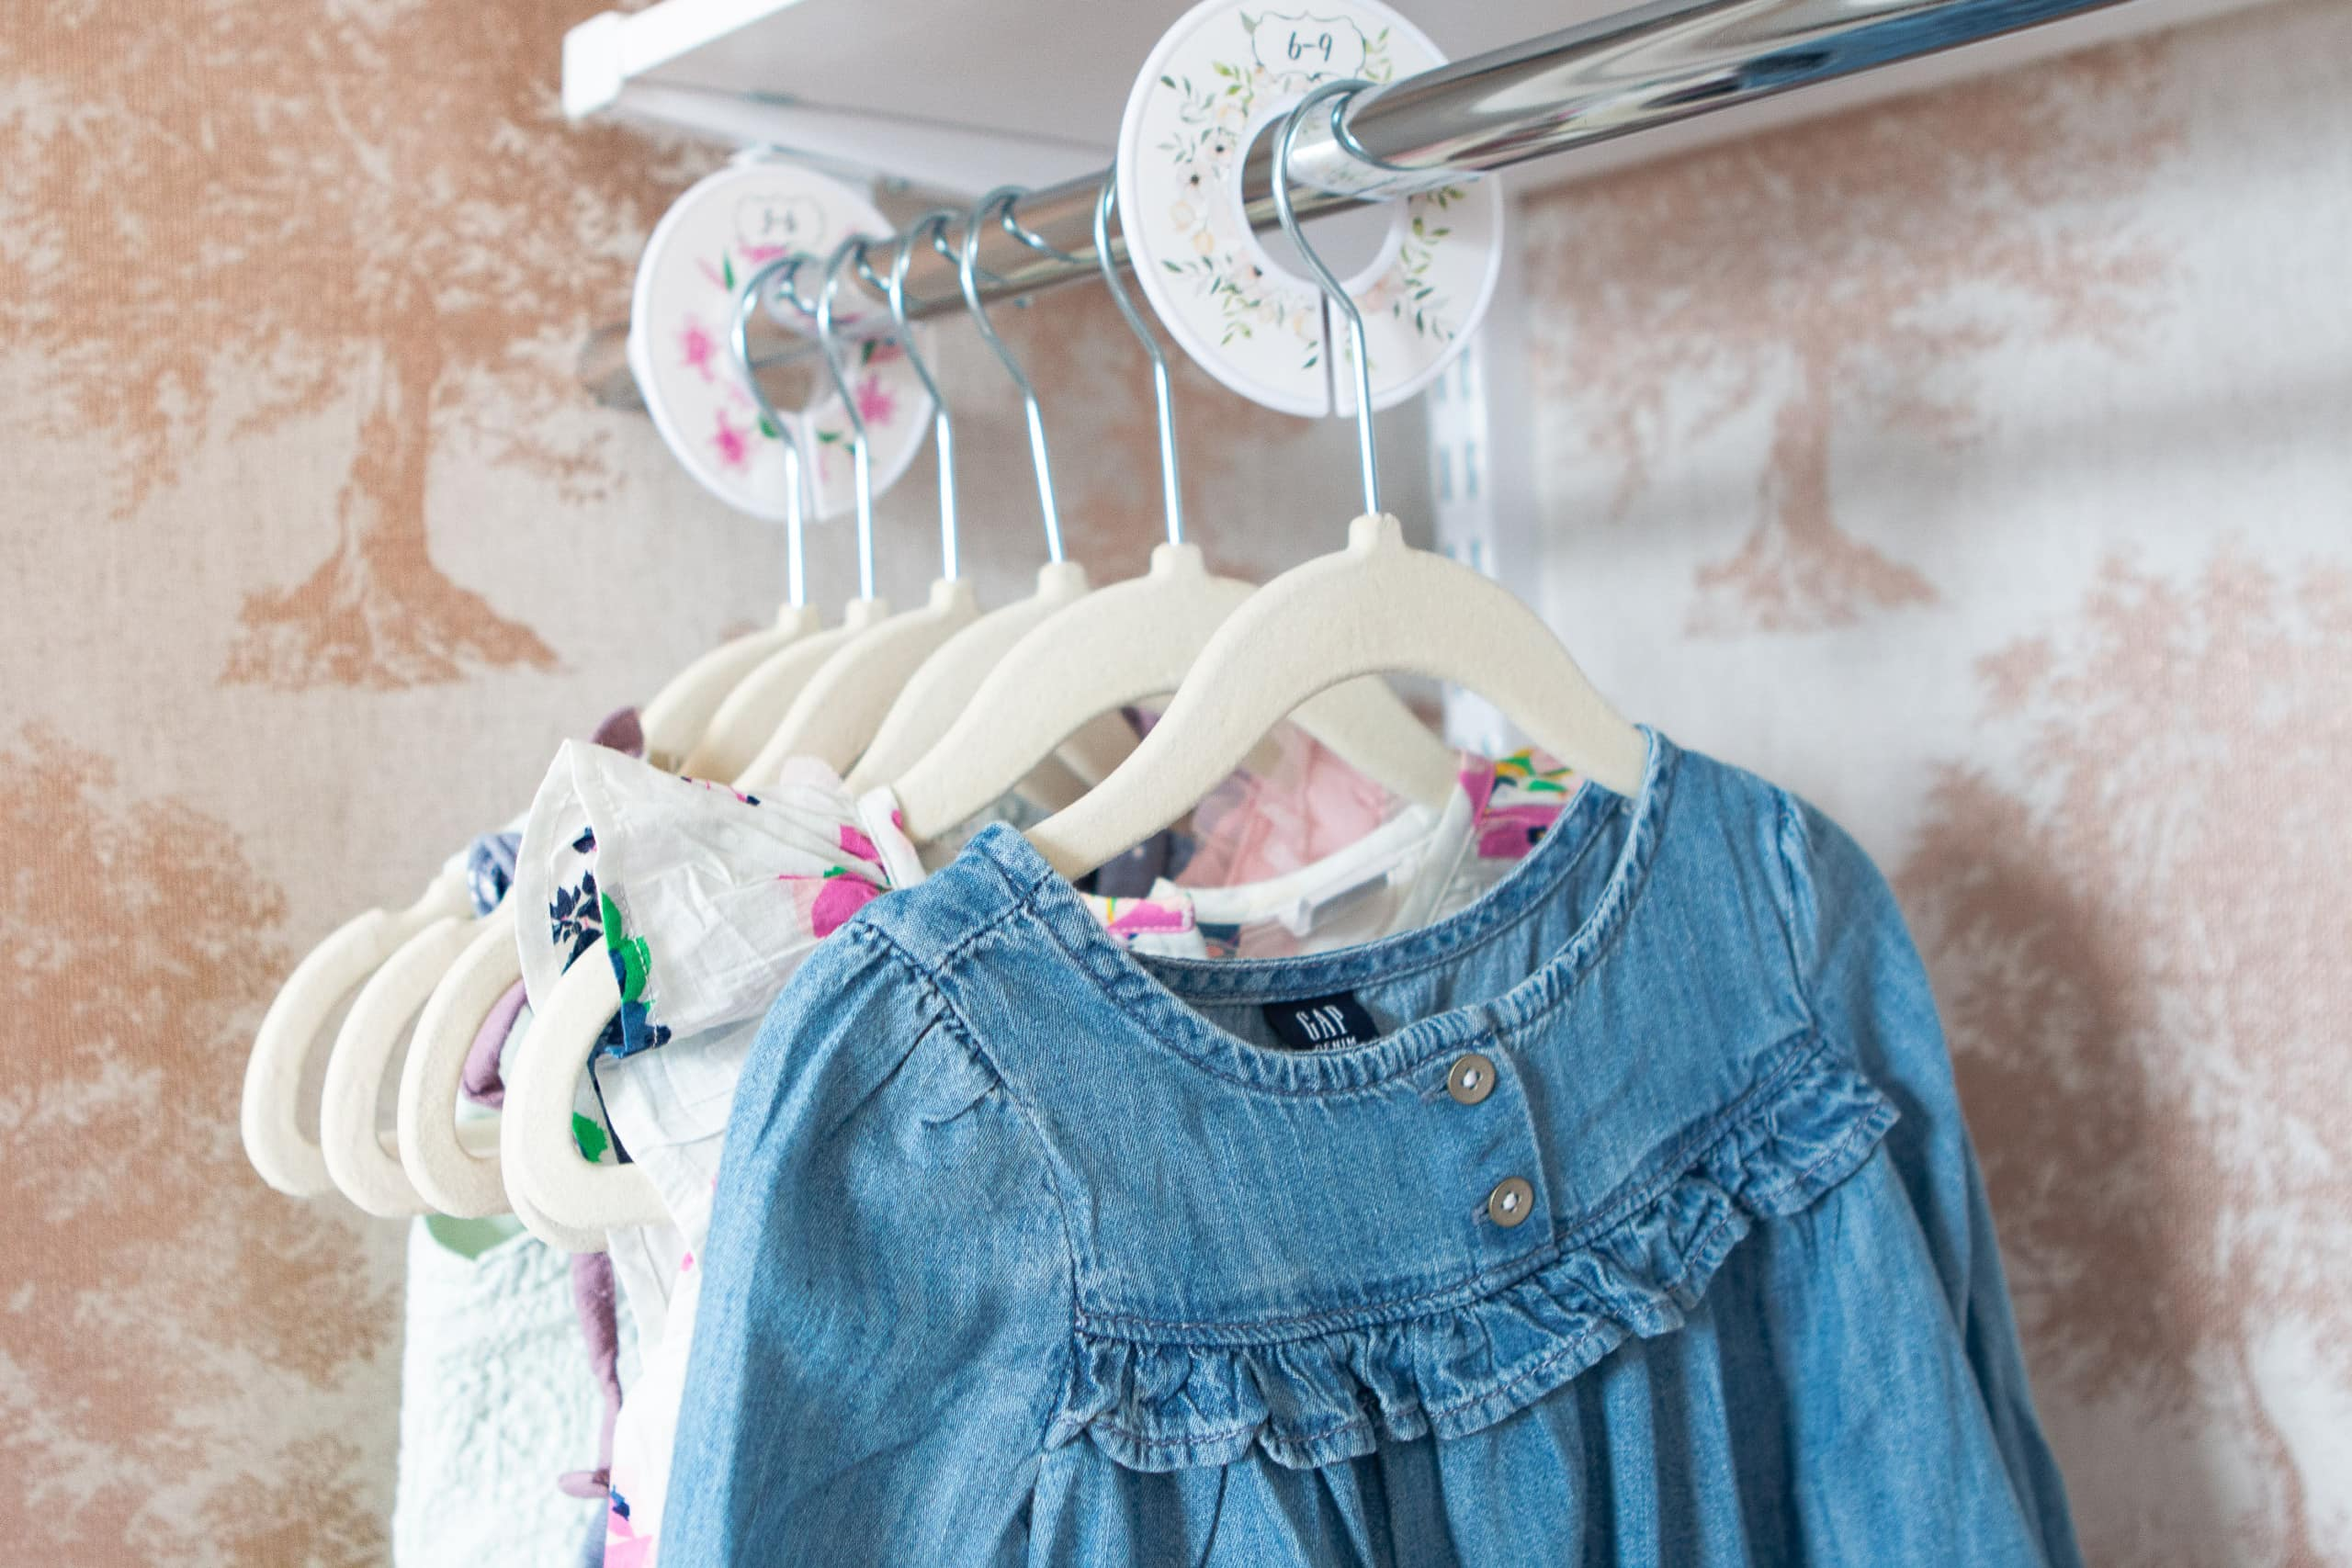 How to organize clothes in a nursery